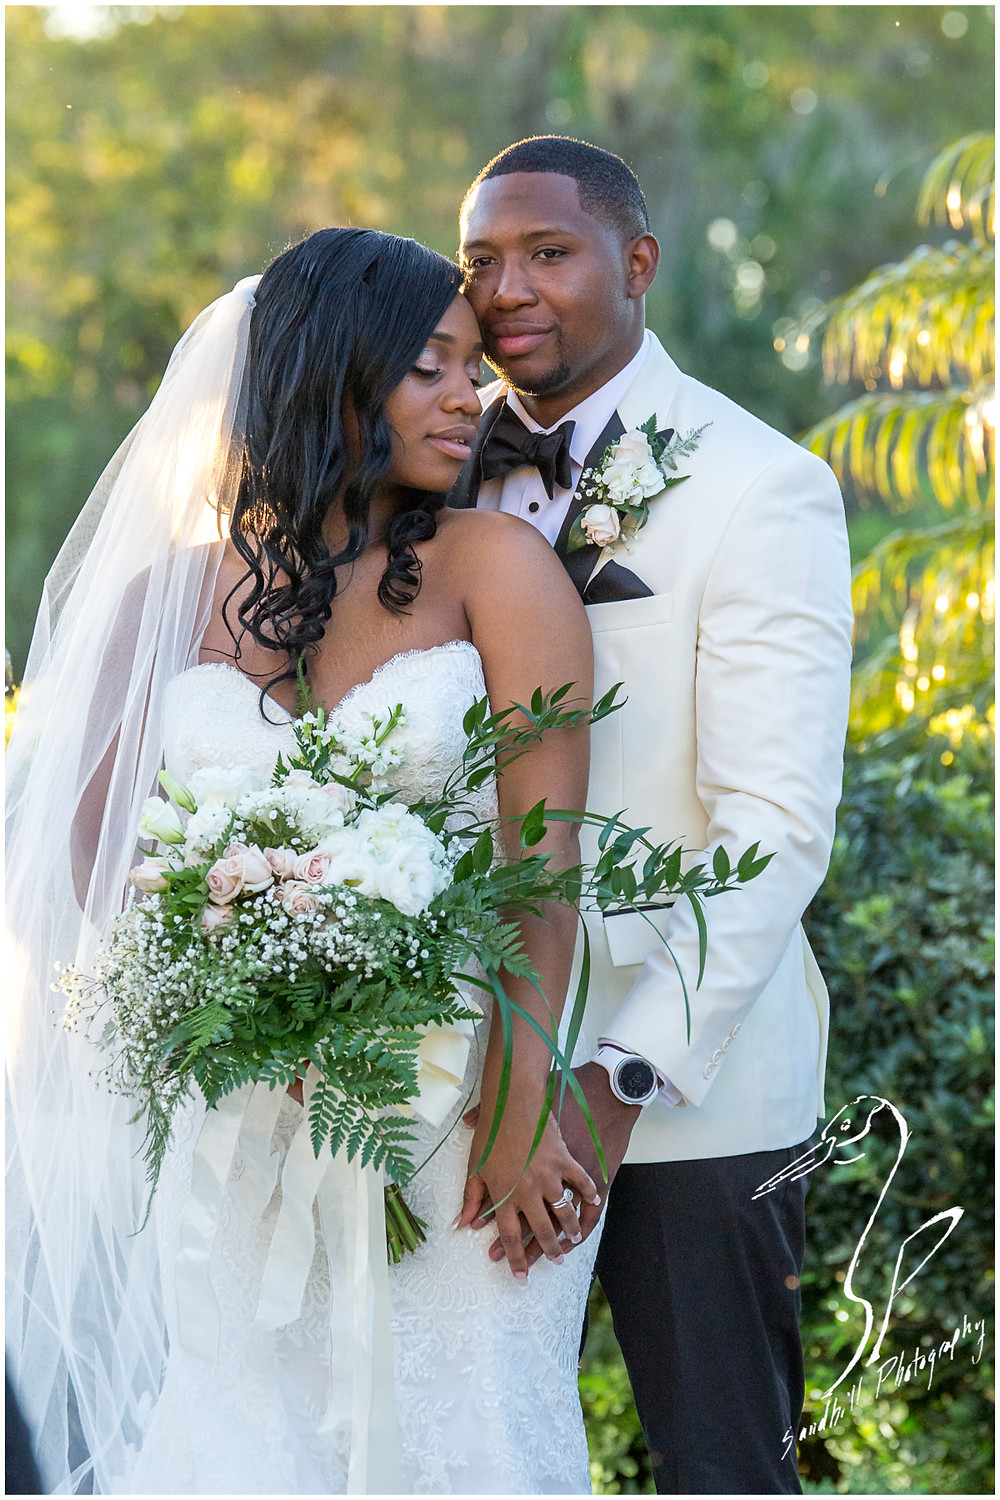 Bradenton Wedding Photographer, Portrait of the bride and groom intimately embracing in a garden at the Mirabay Club